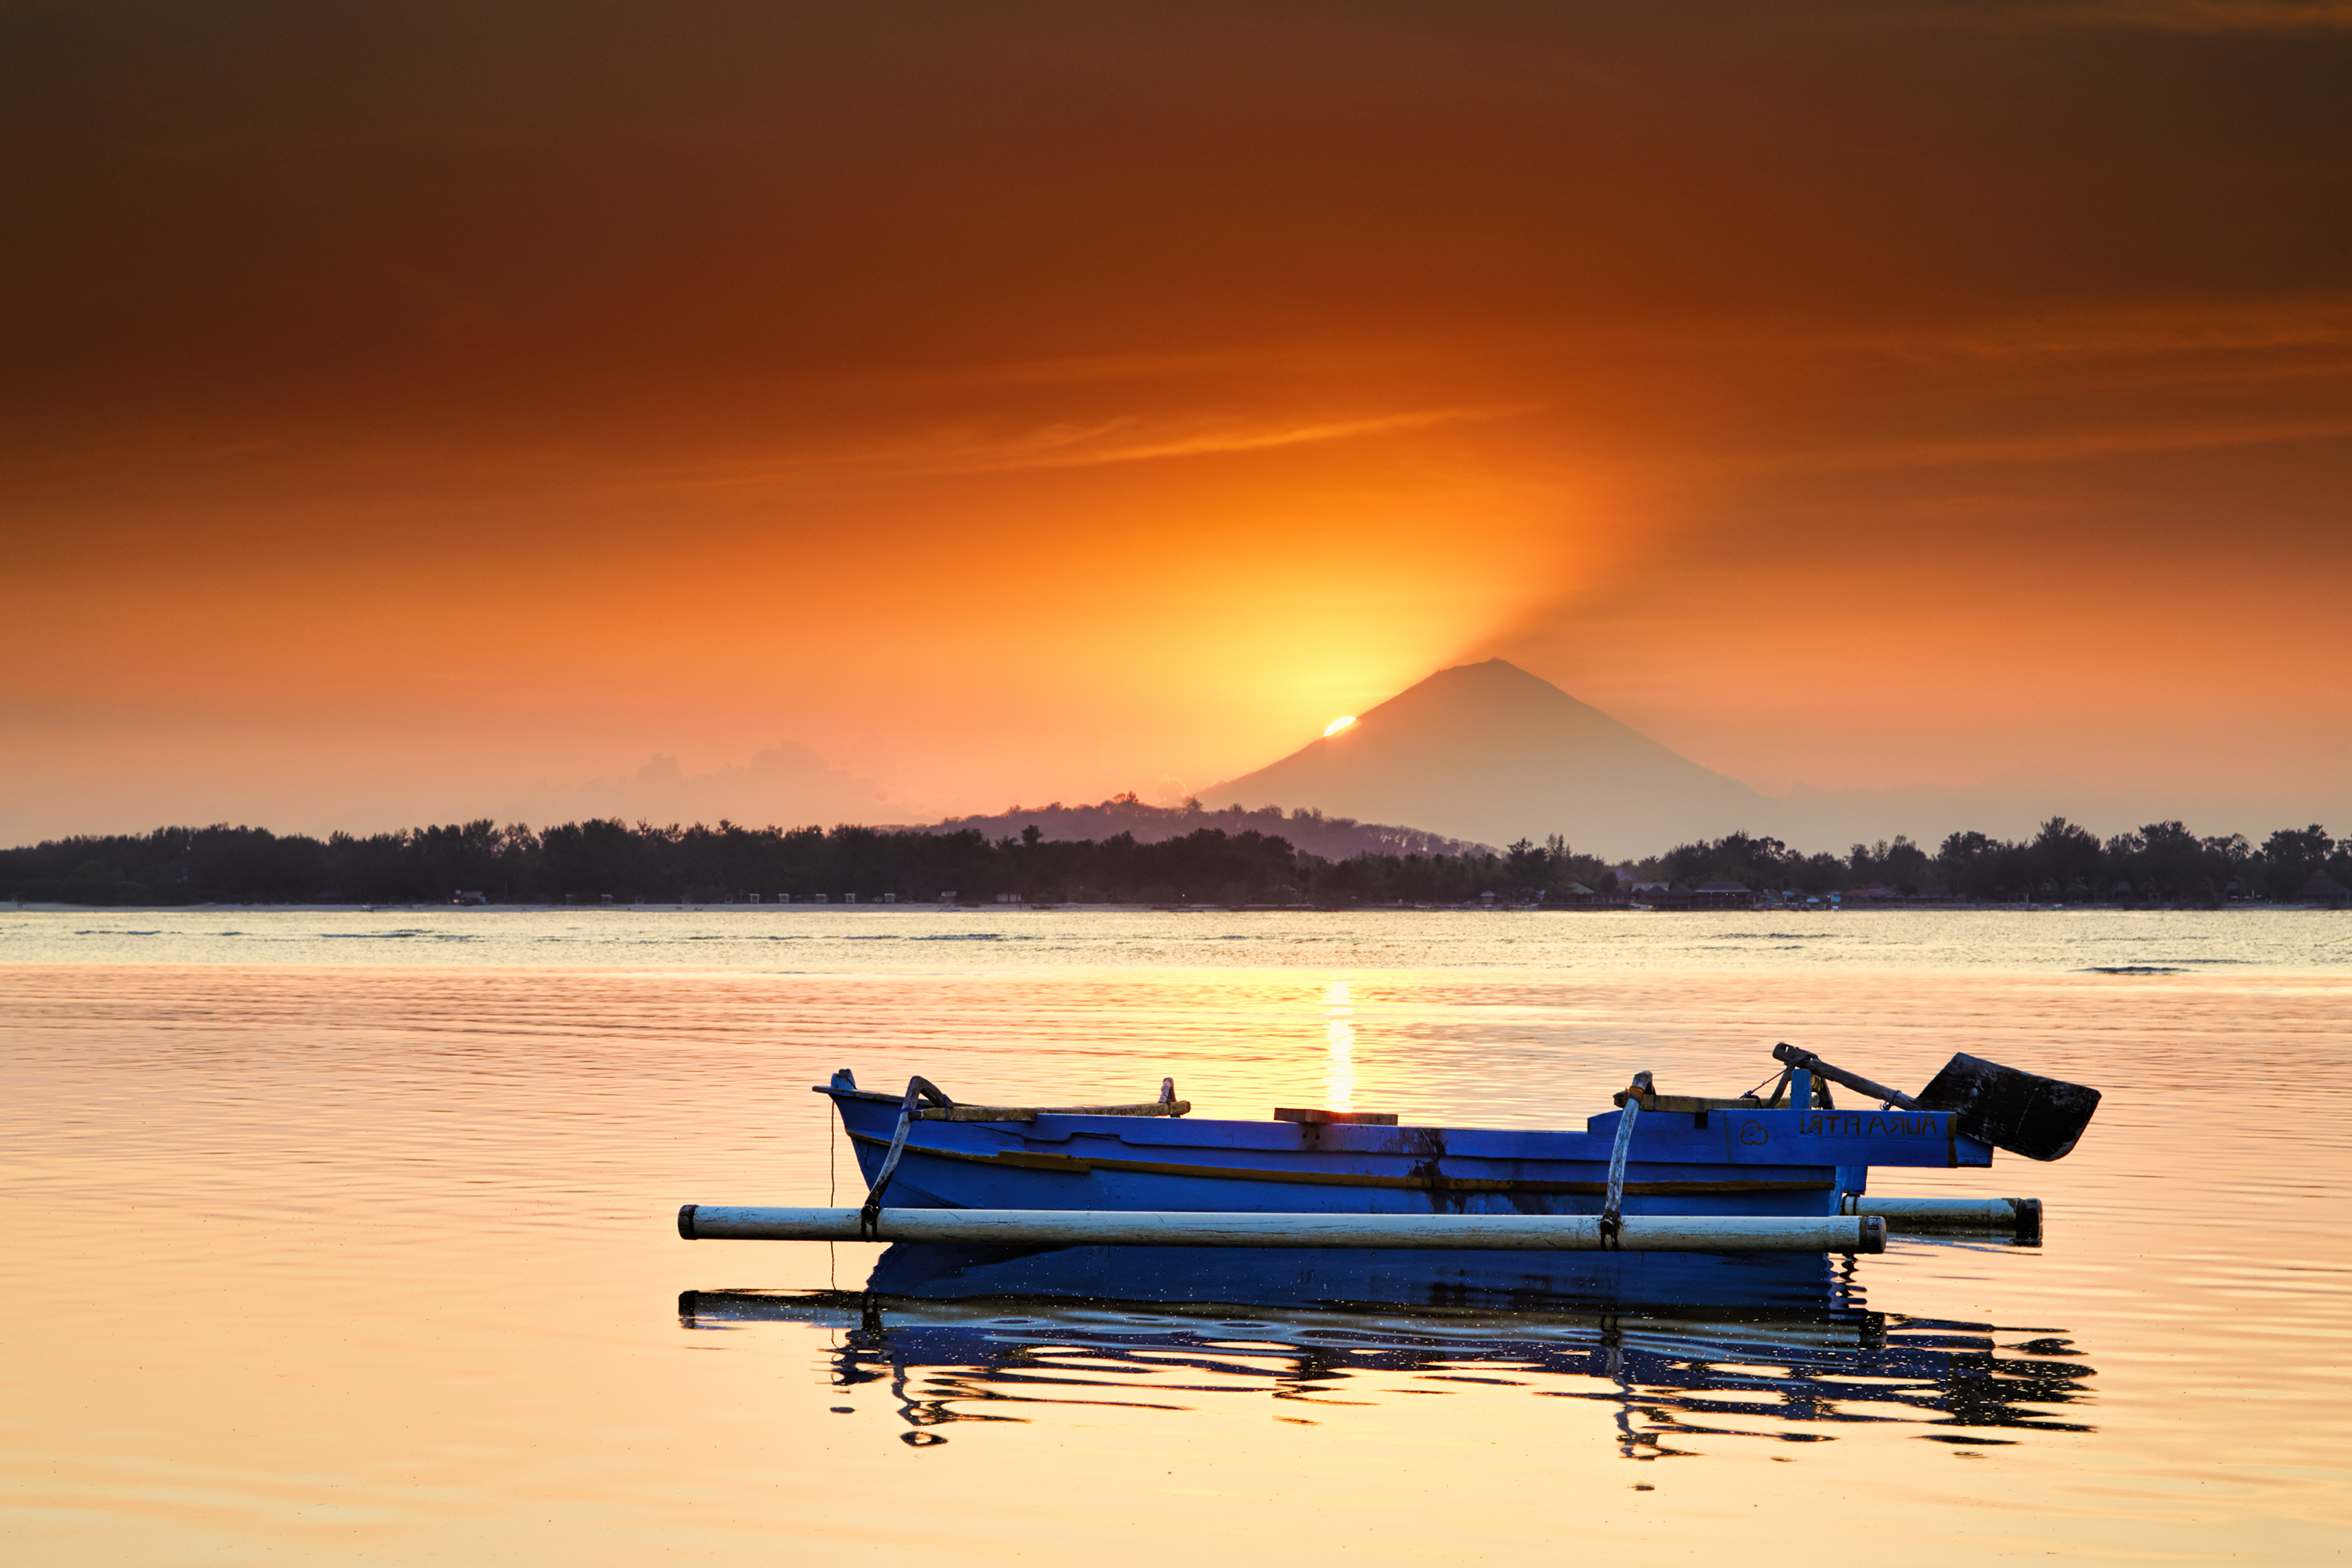 Sunset, Indonesia